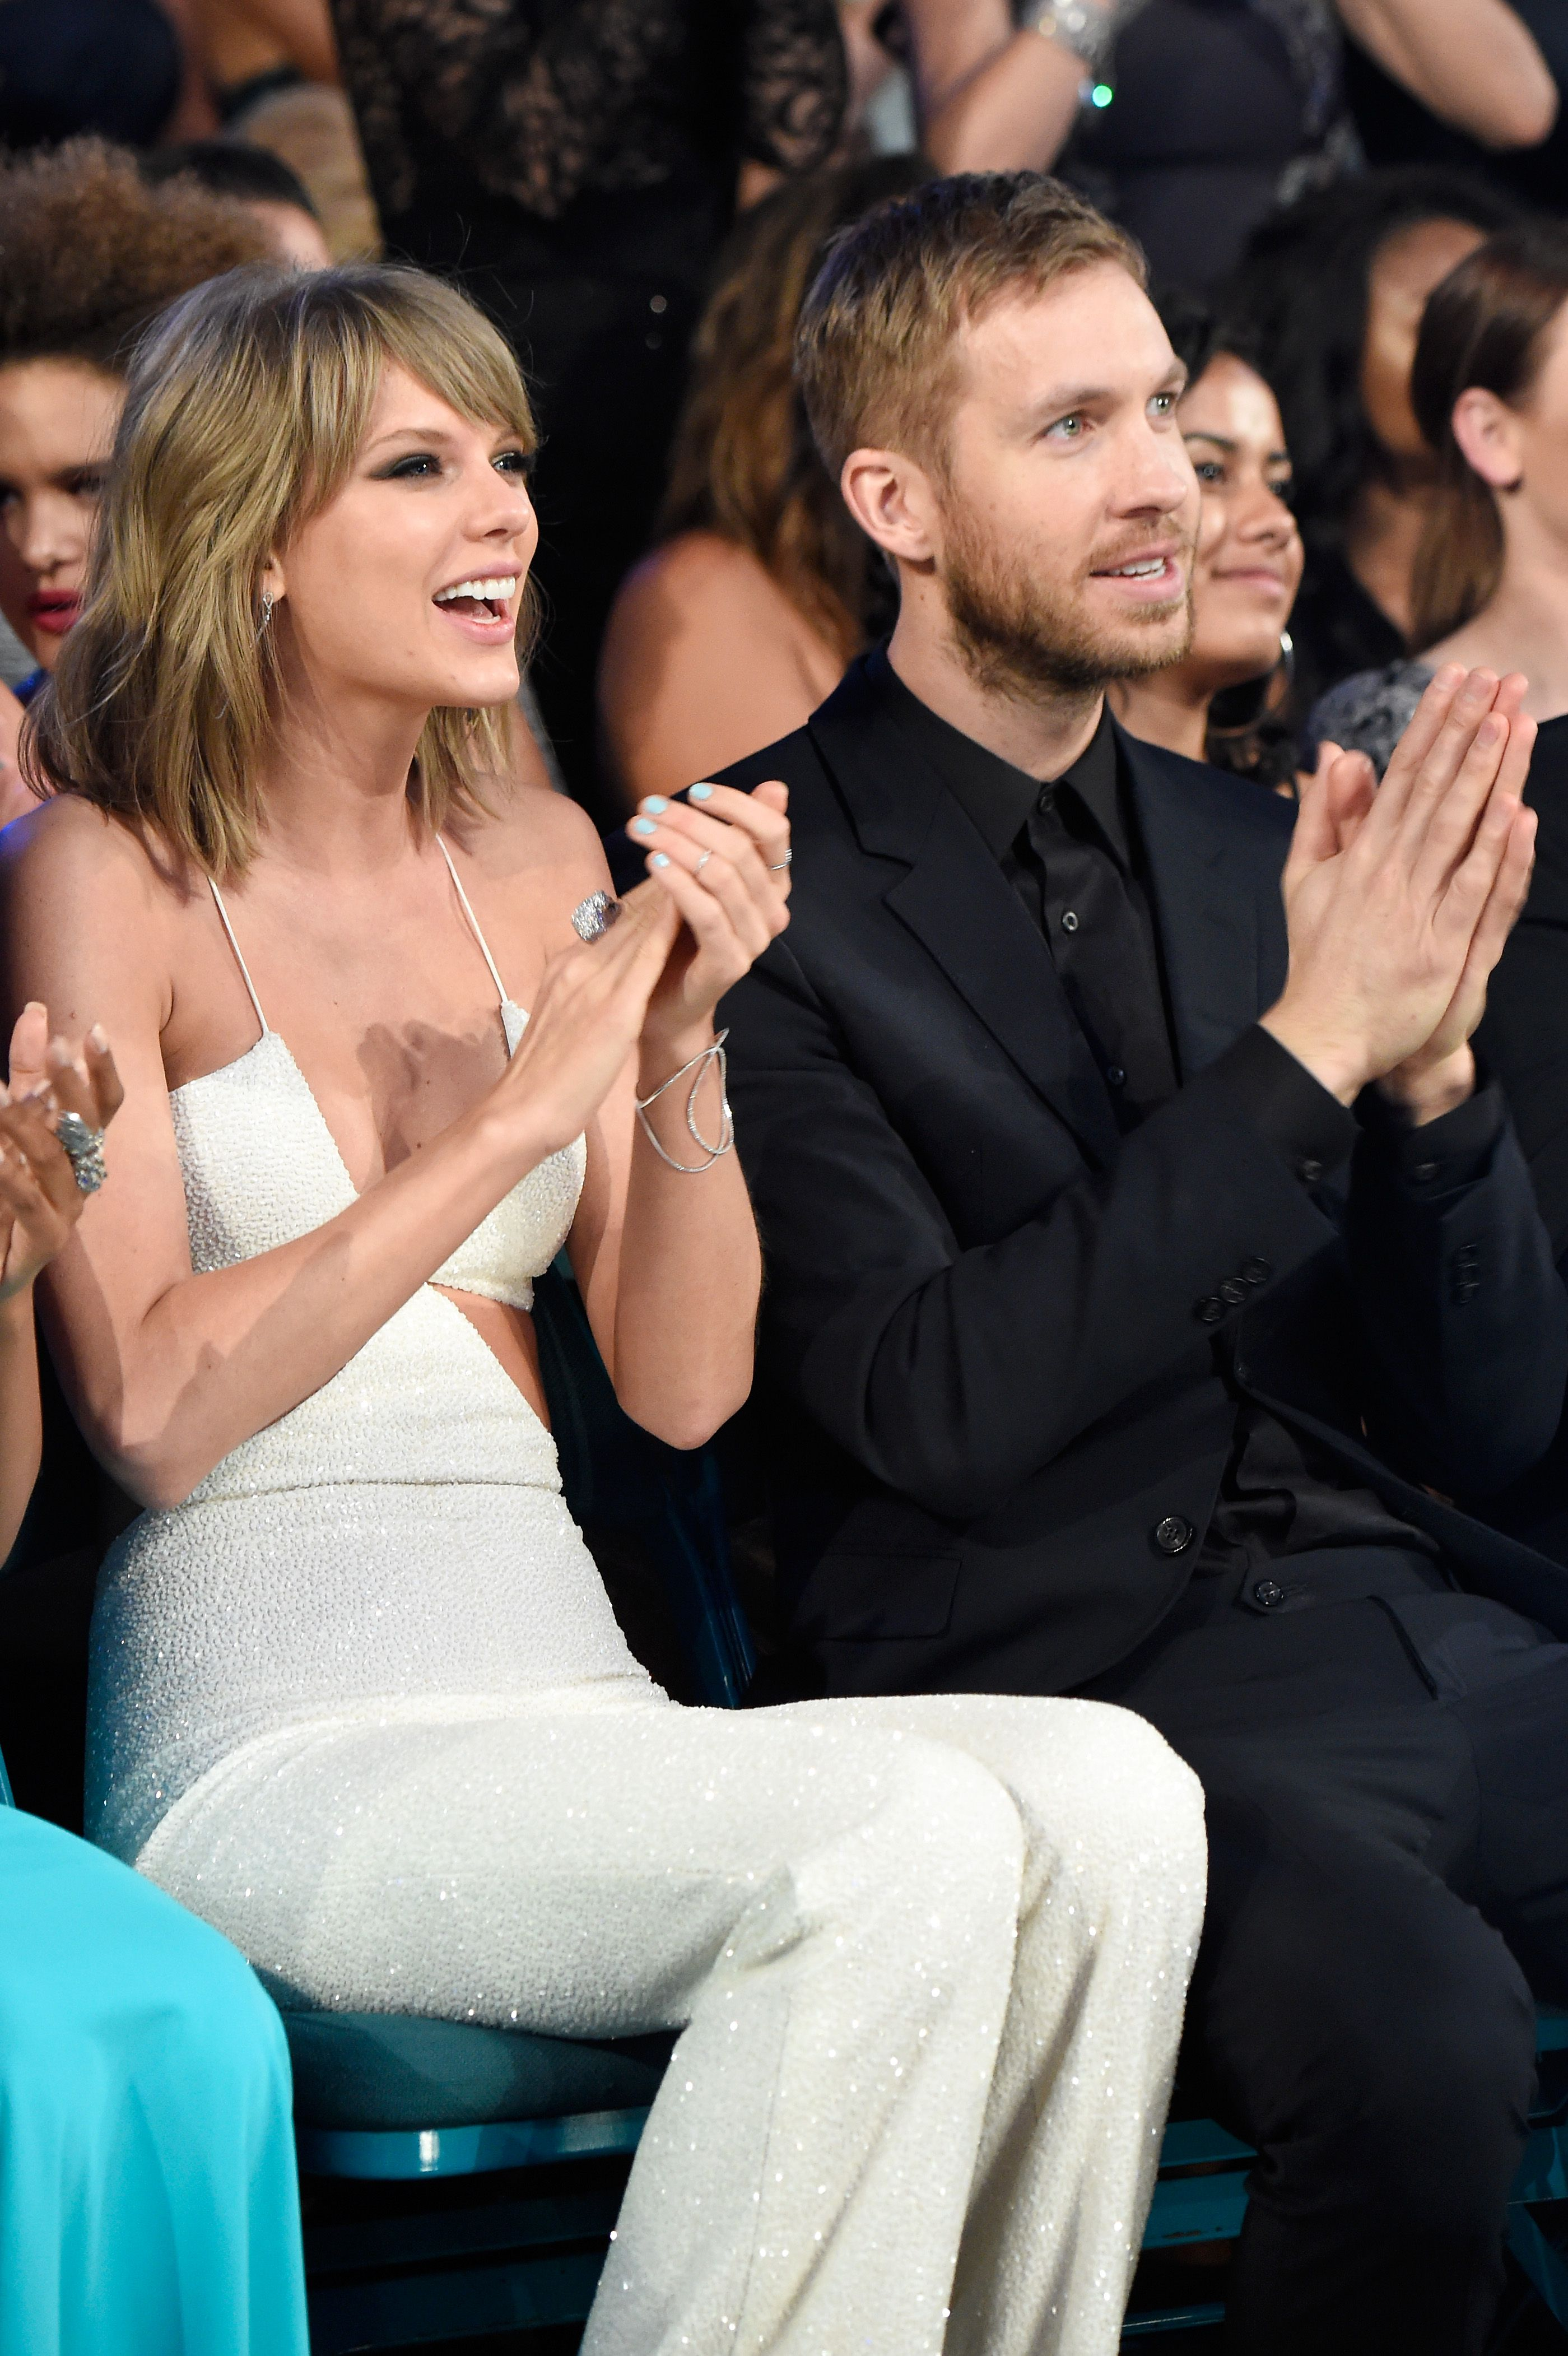 Taylor Swift and Calvin Harris Ellie Goulding admitted to setting the singer and DJ up. The pair dated for more than a year before splitting in 2016.